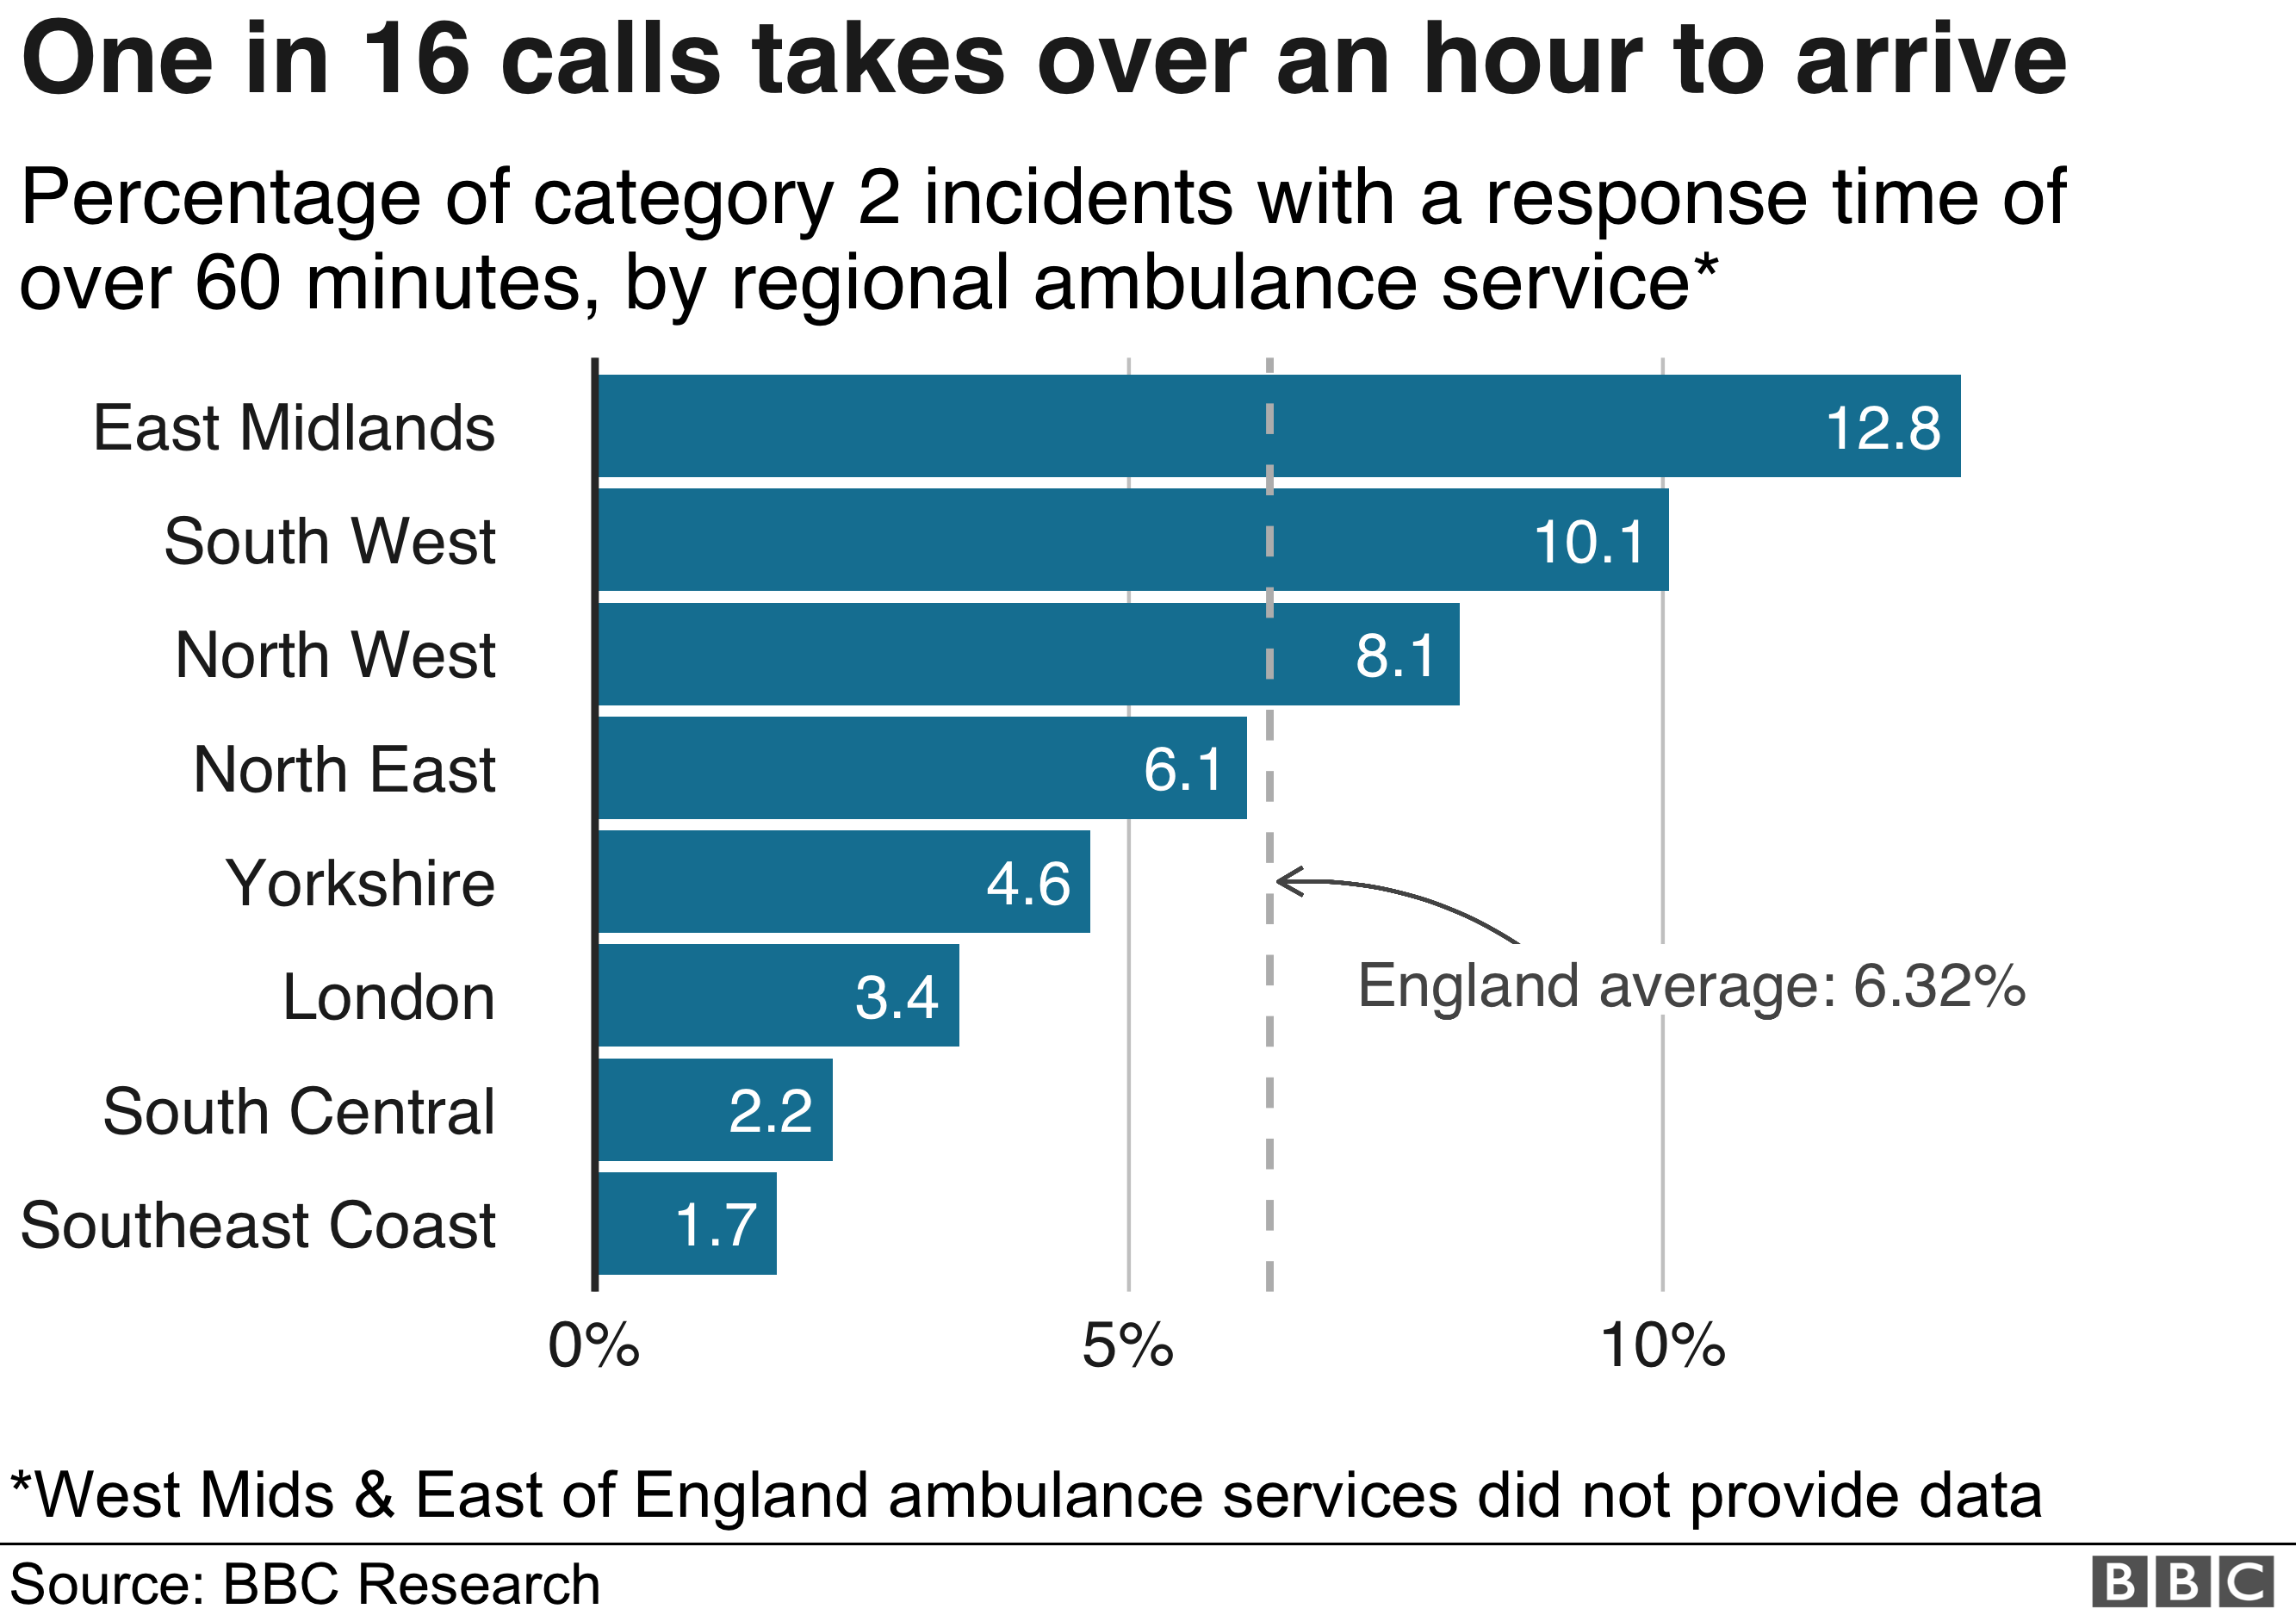 Chart showing regional ambulance performance